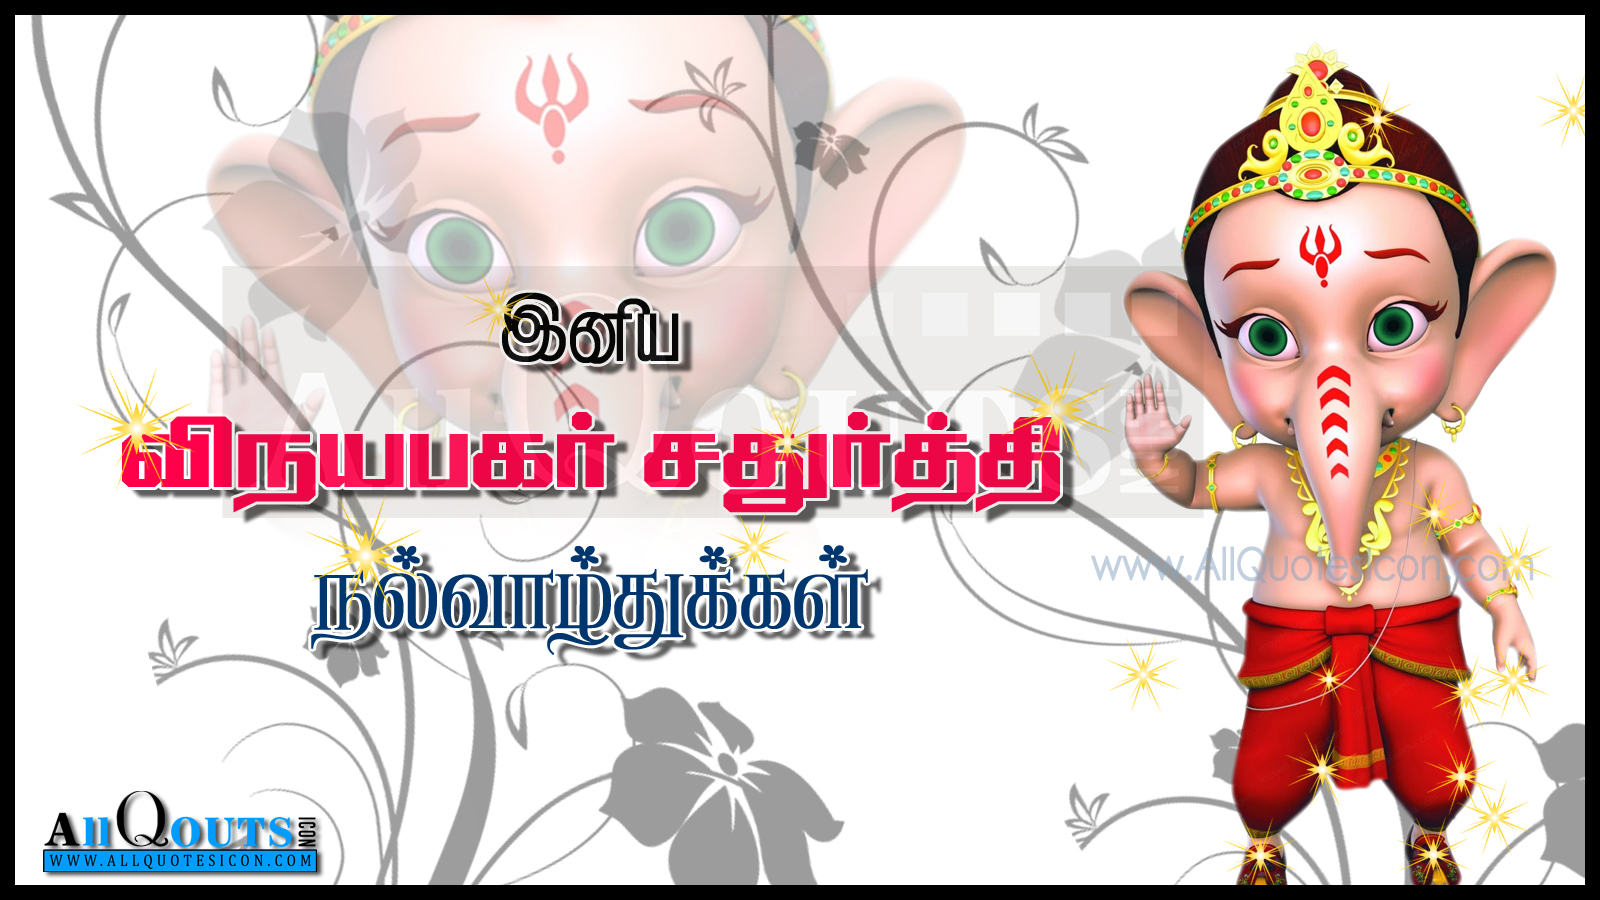 Happy Vinayaka Chavithi Quotes And Greetings In Tamil Hd Wallpapers